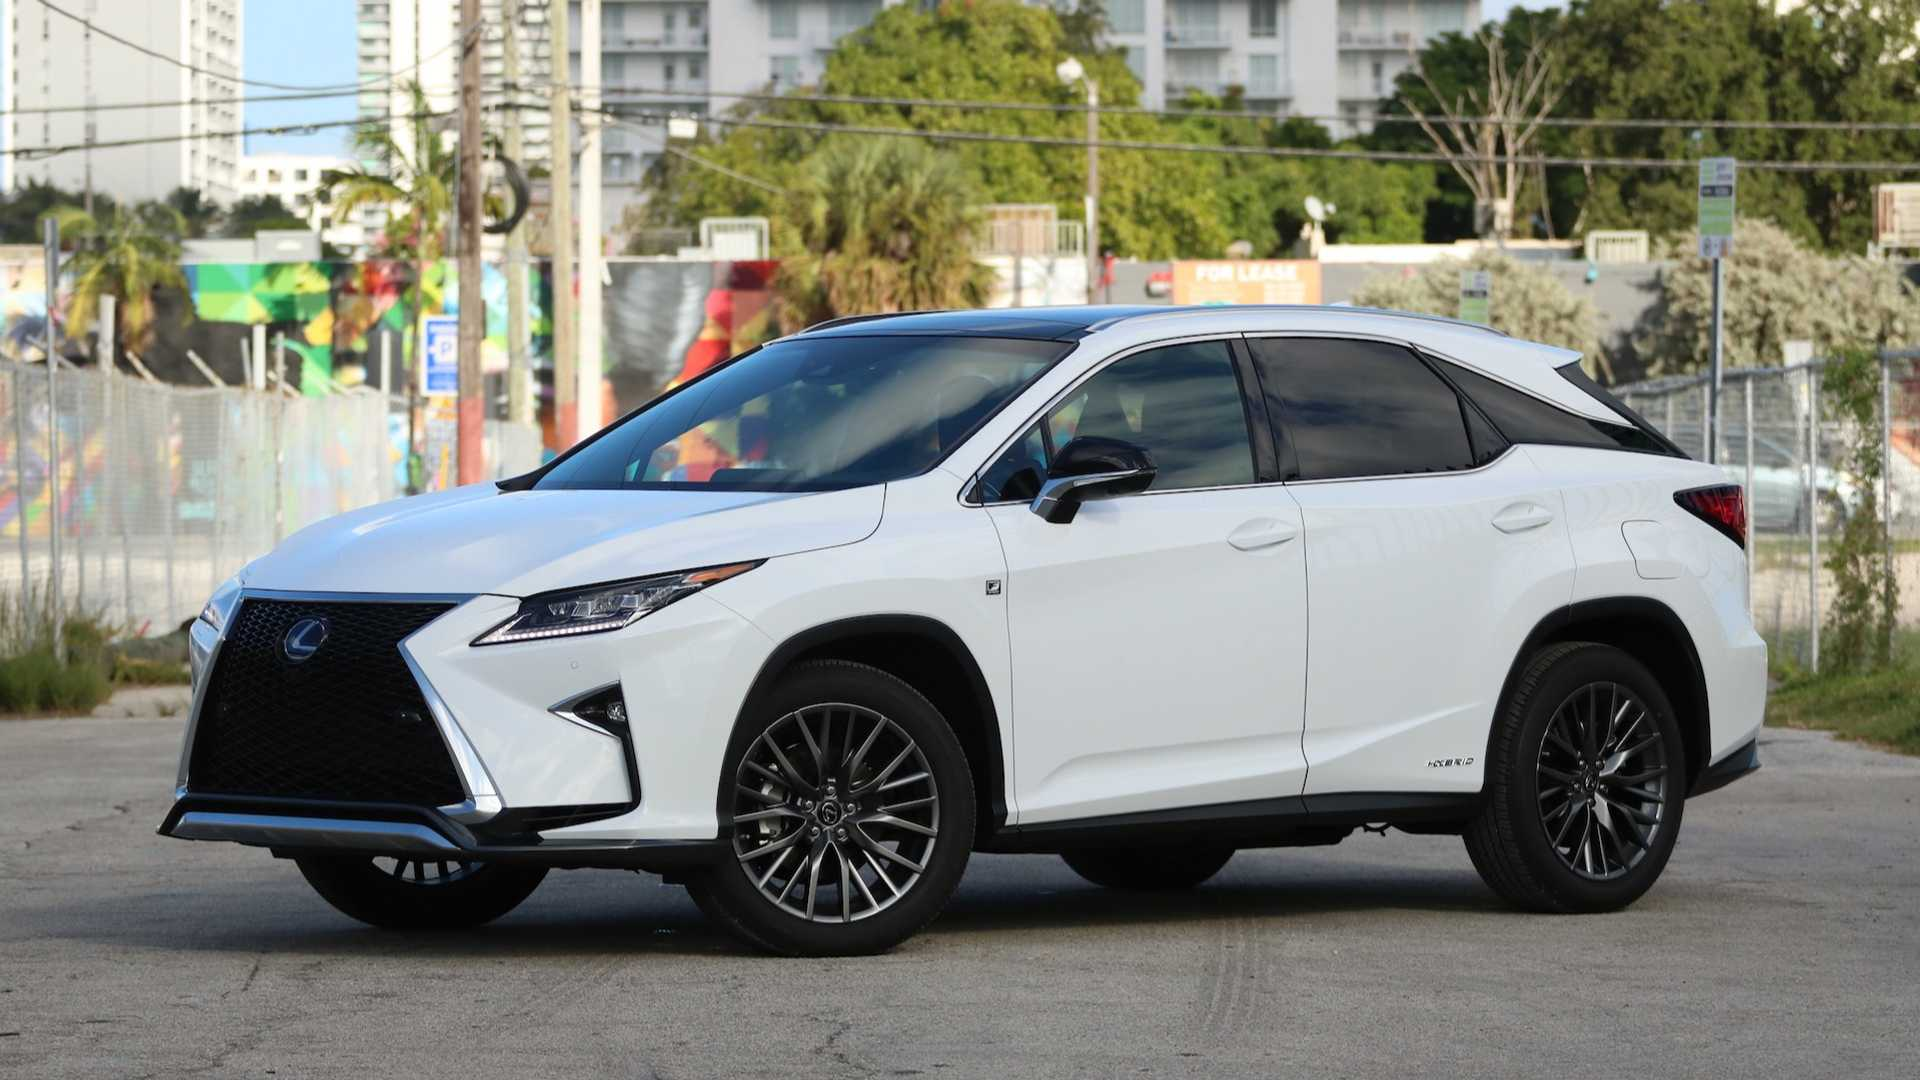 2018 Lexus RX 450h: News, Changes, Price >> 2018 Lexus Rx 450h Review The Original Luxury Crossover Suv